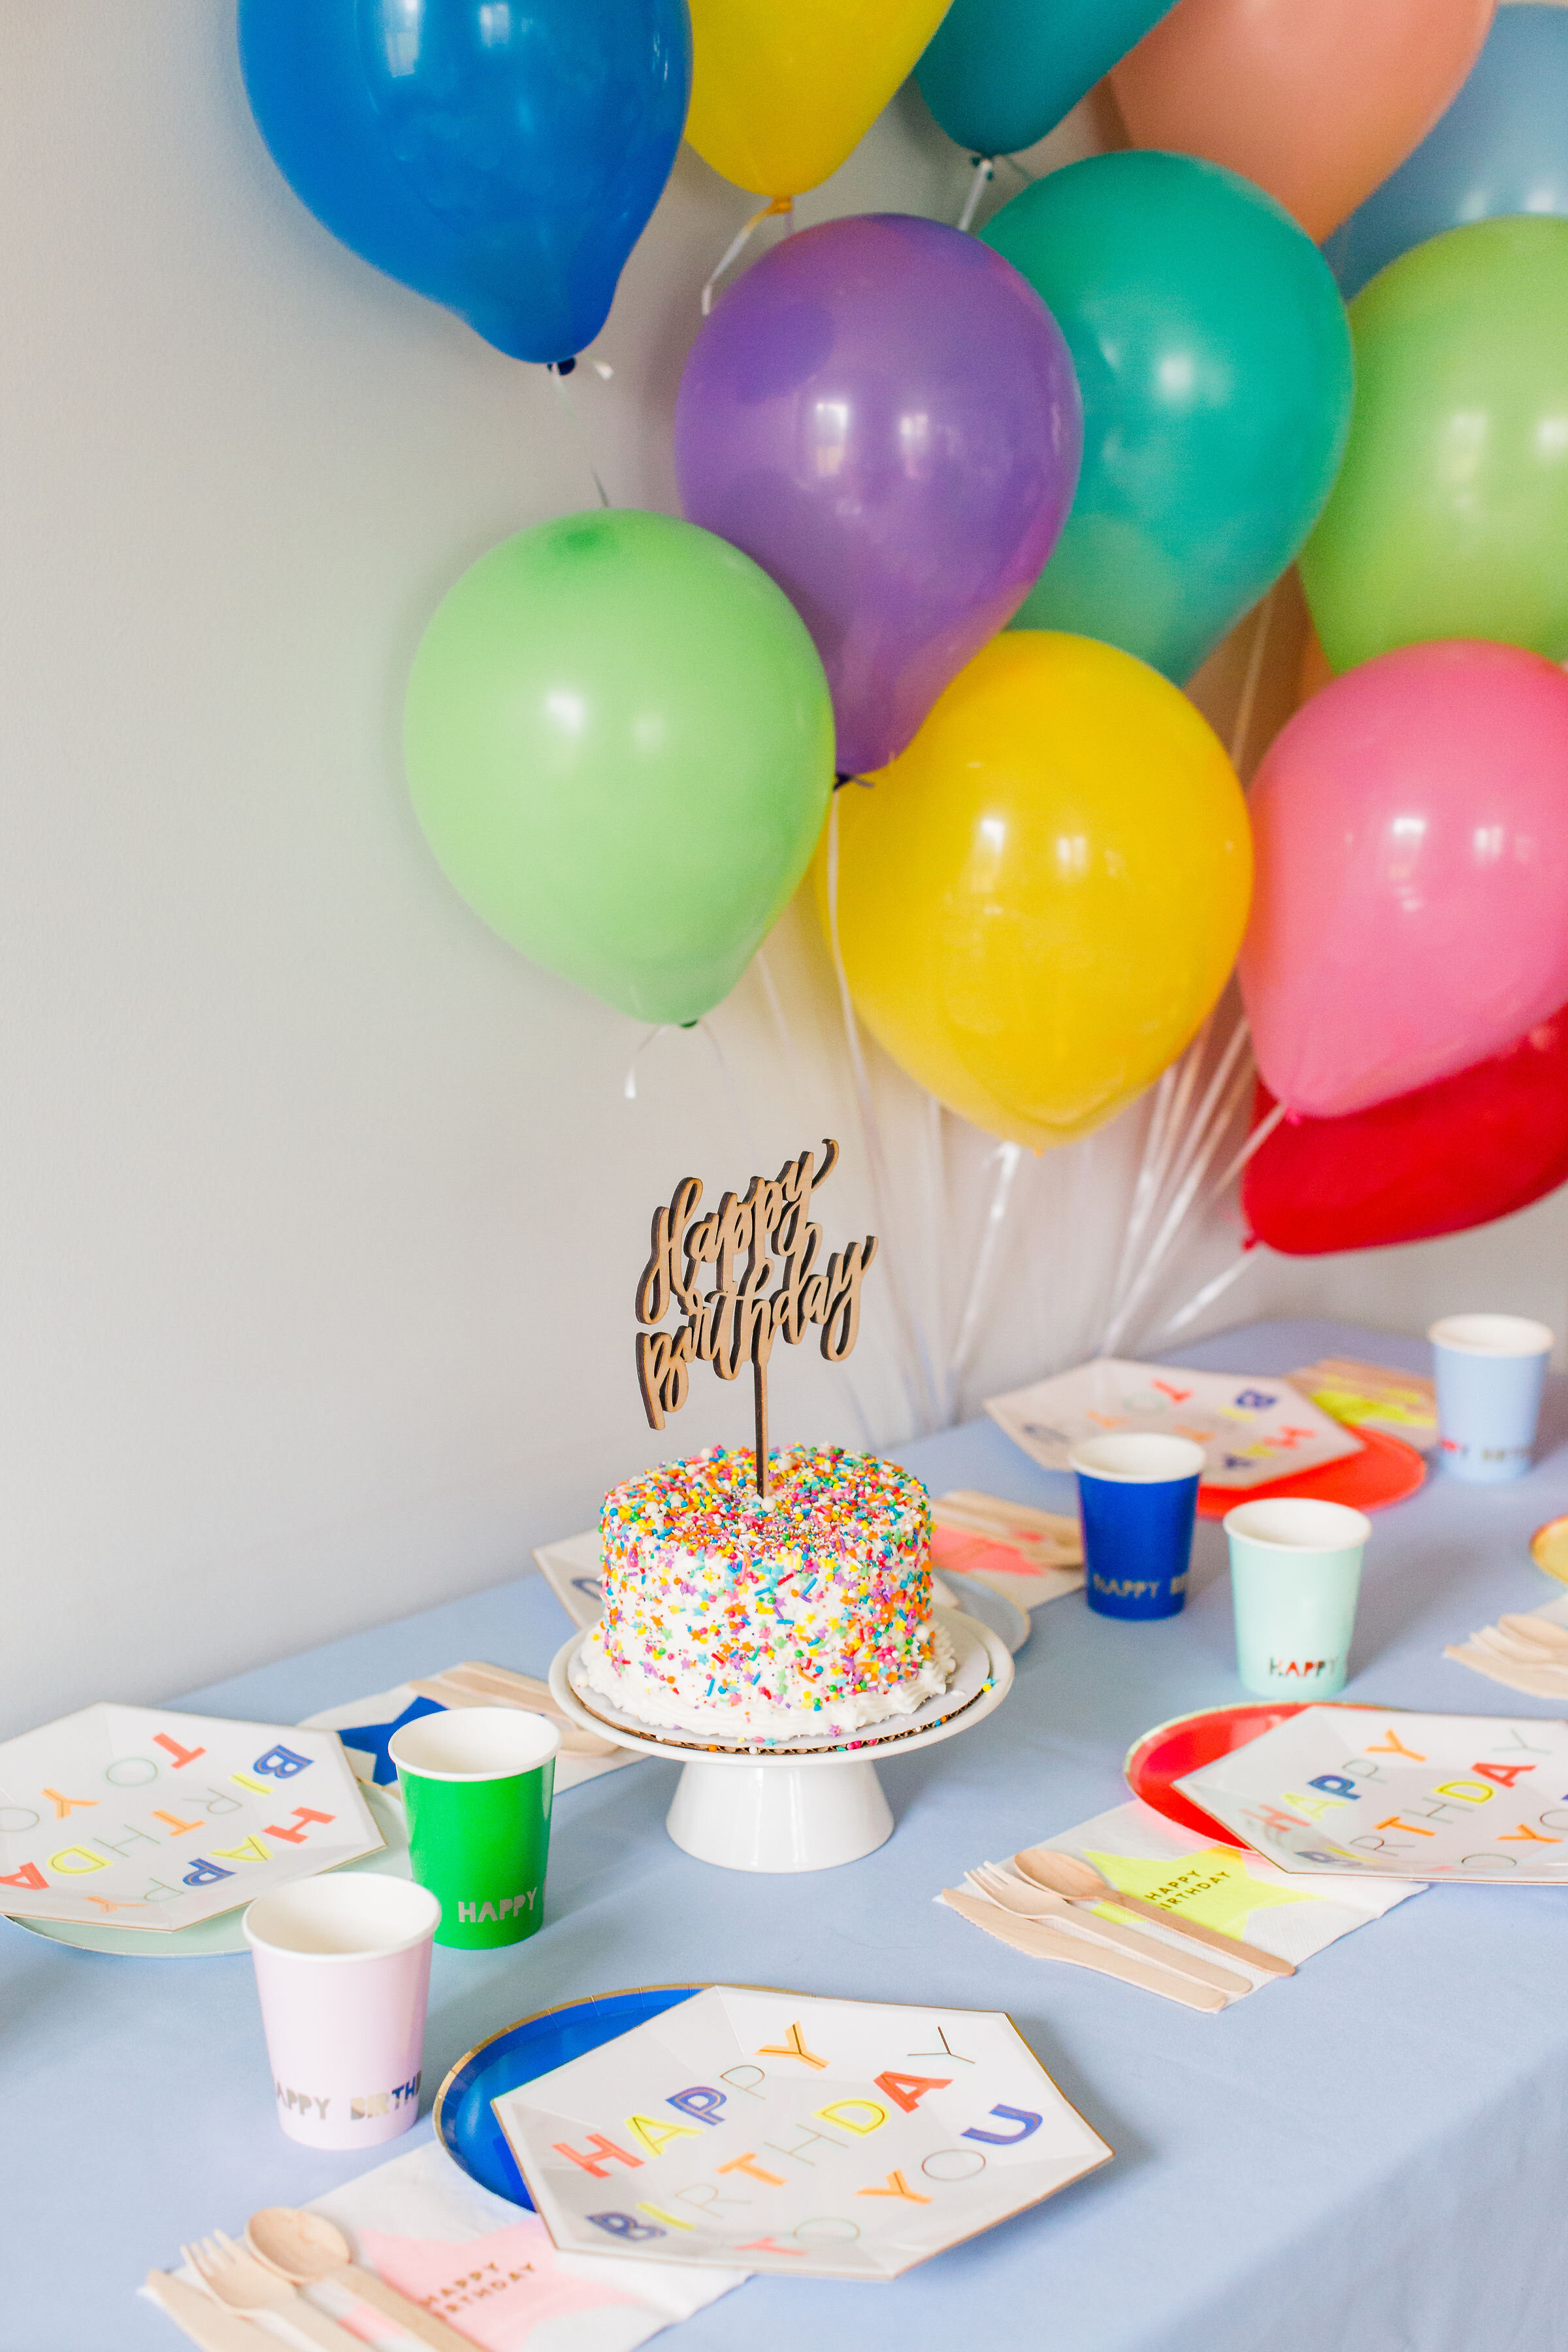 How To Have A Kids Birthday Party While In Quarantine New Orleans Louisiana Wedding Planning Design The Graceful Host